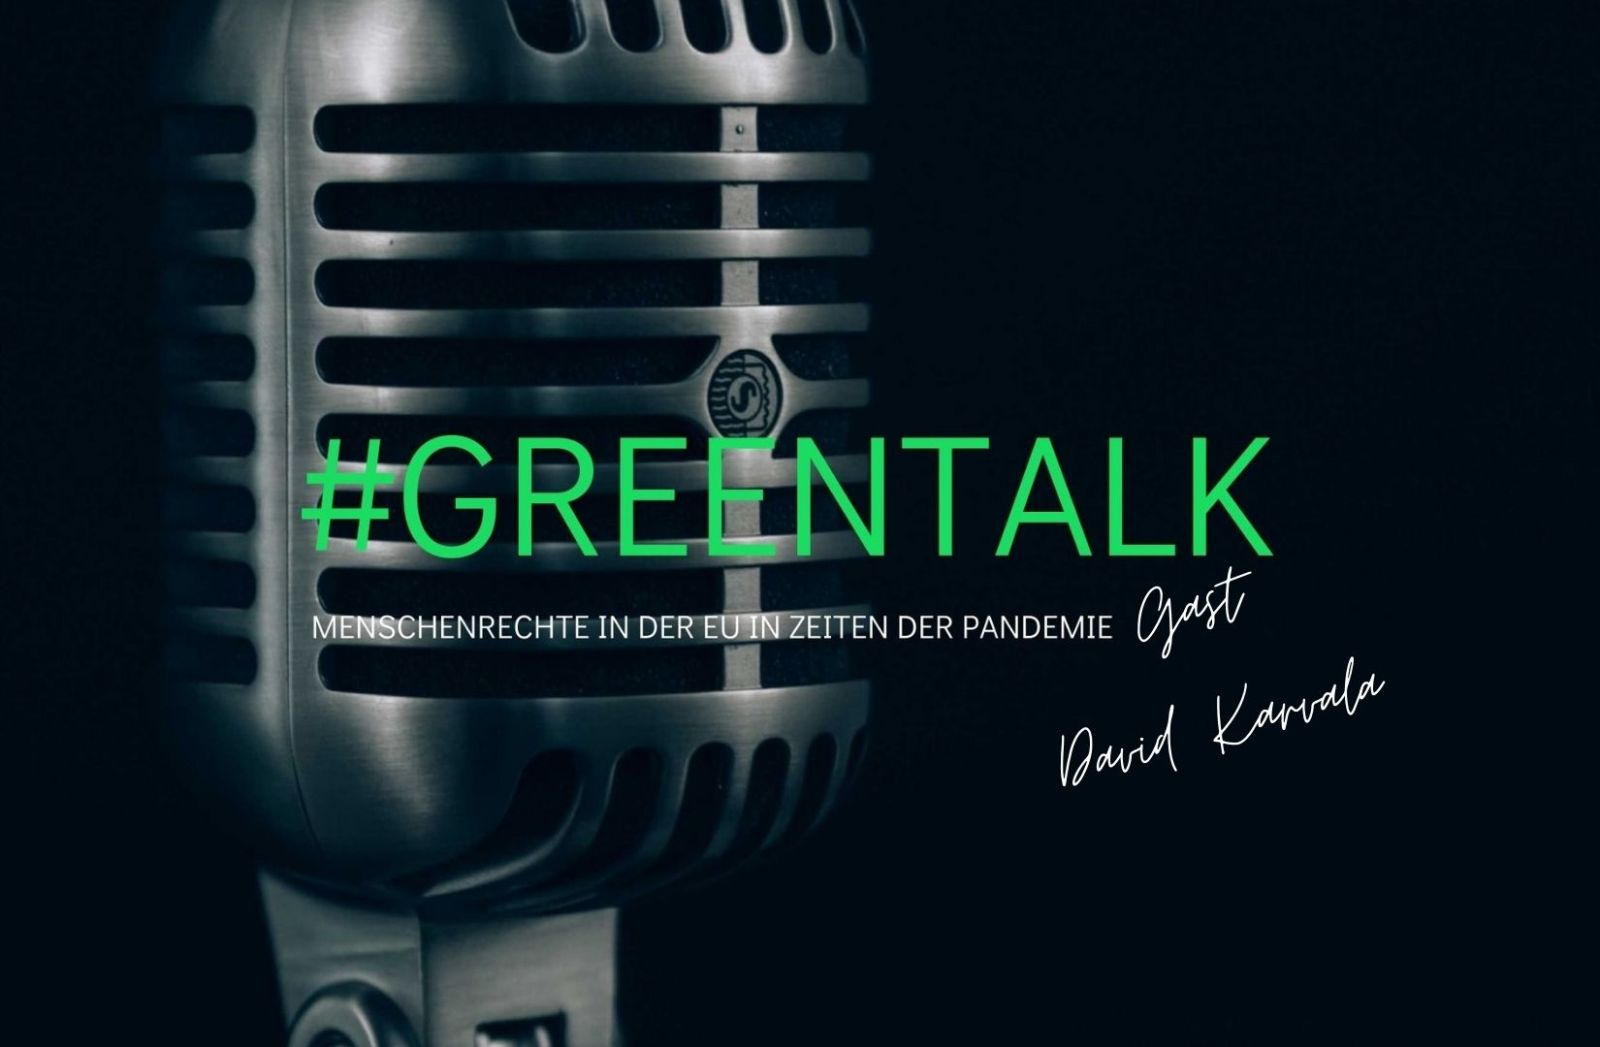 GreenTalk | Gast: David Karvala